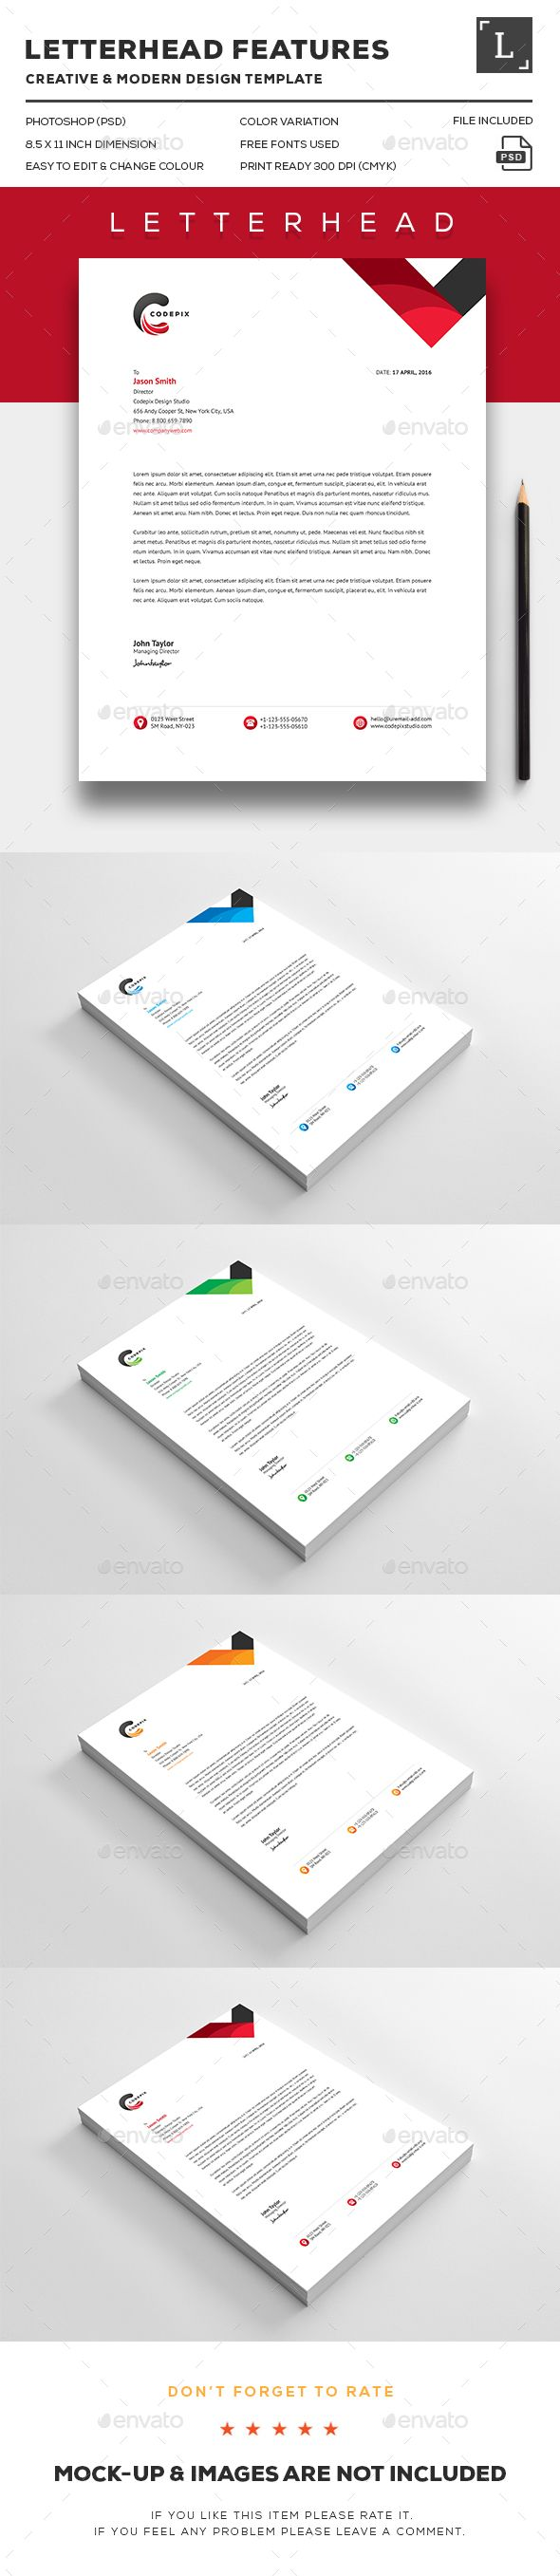 Best Letterhead Images On   Design Patterns Design